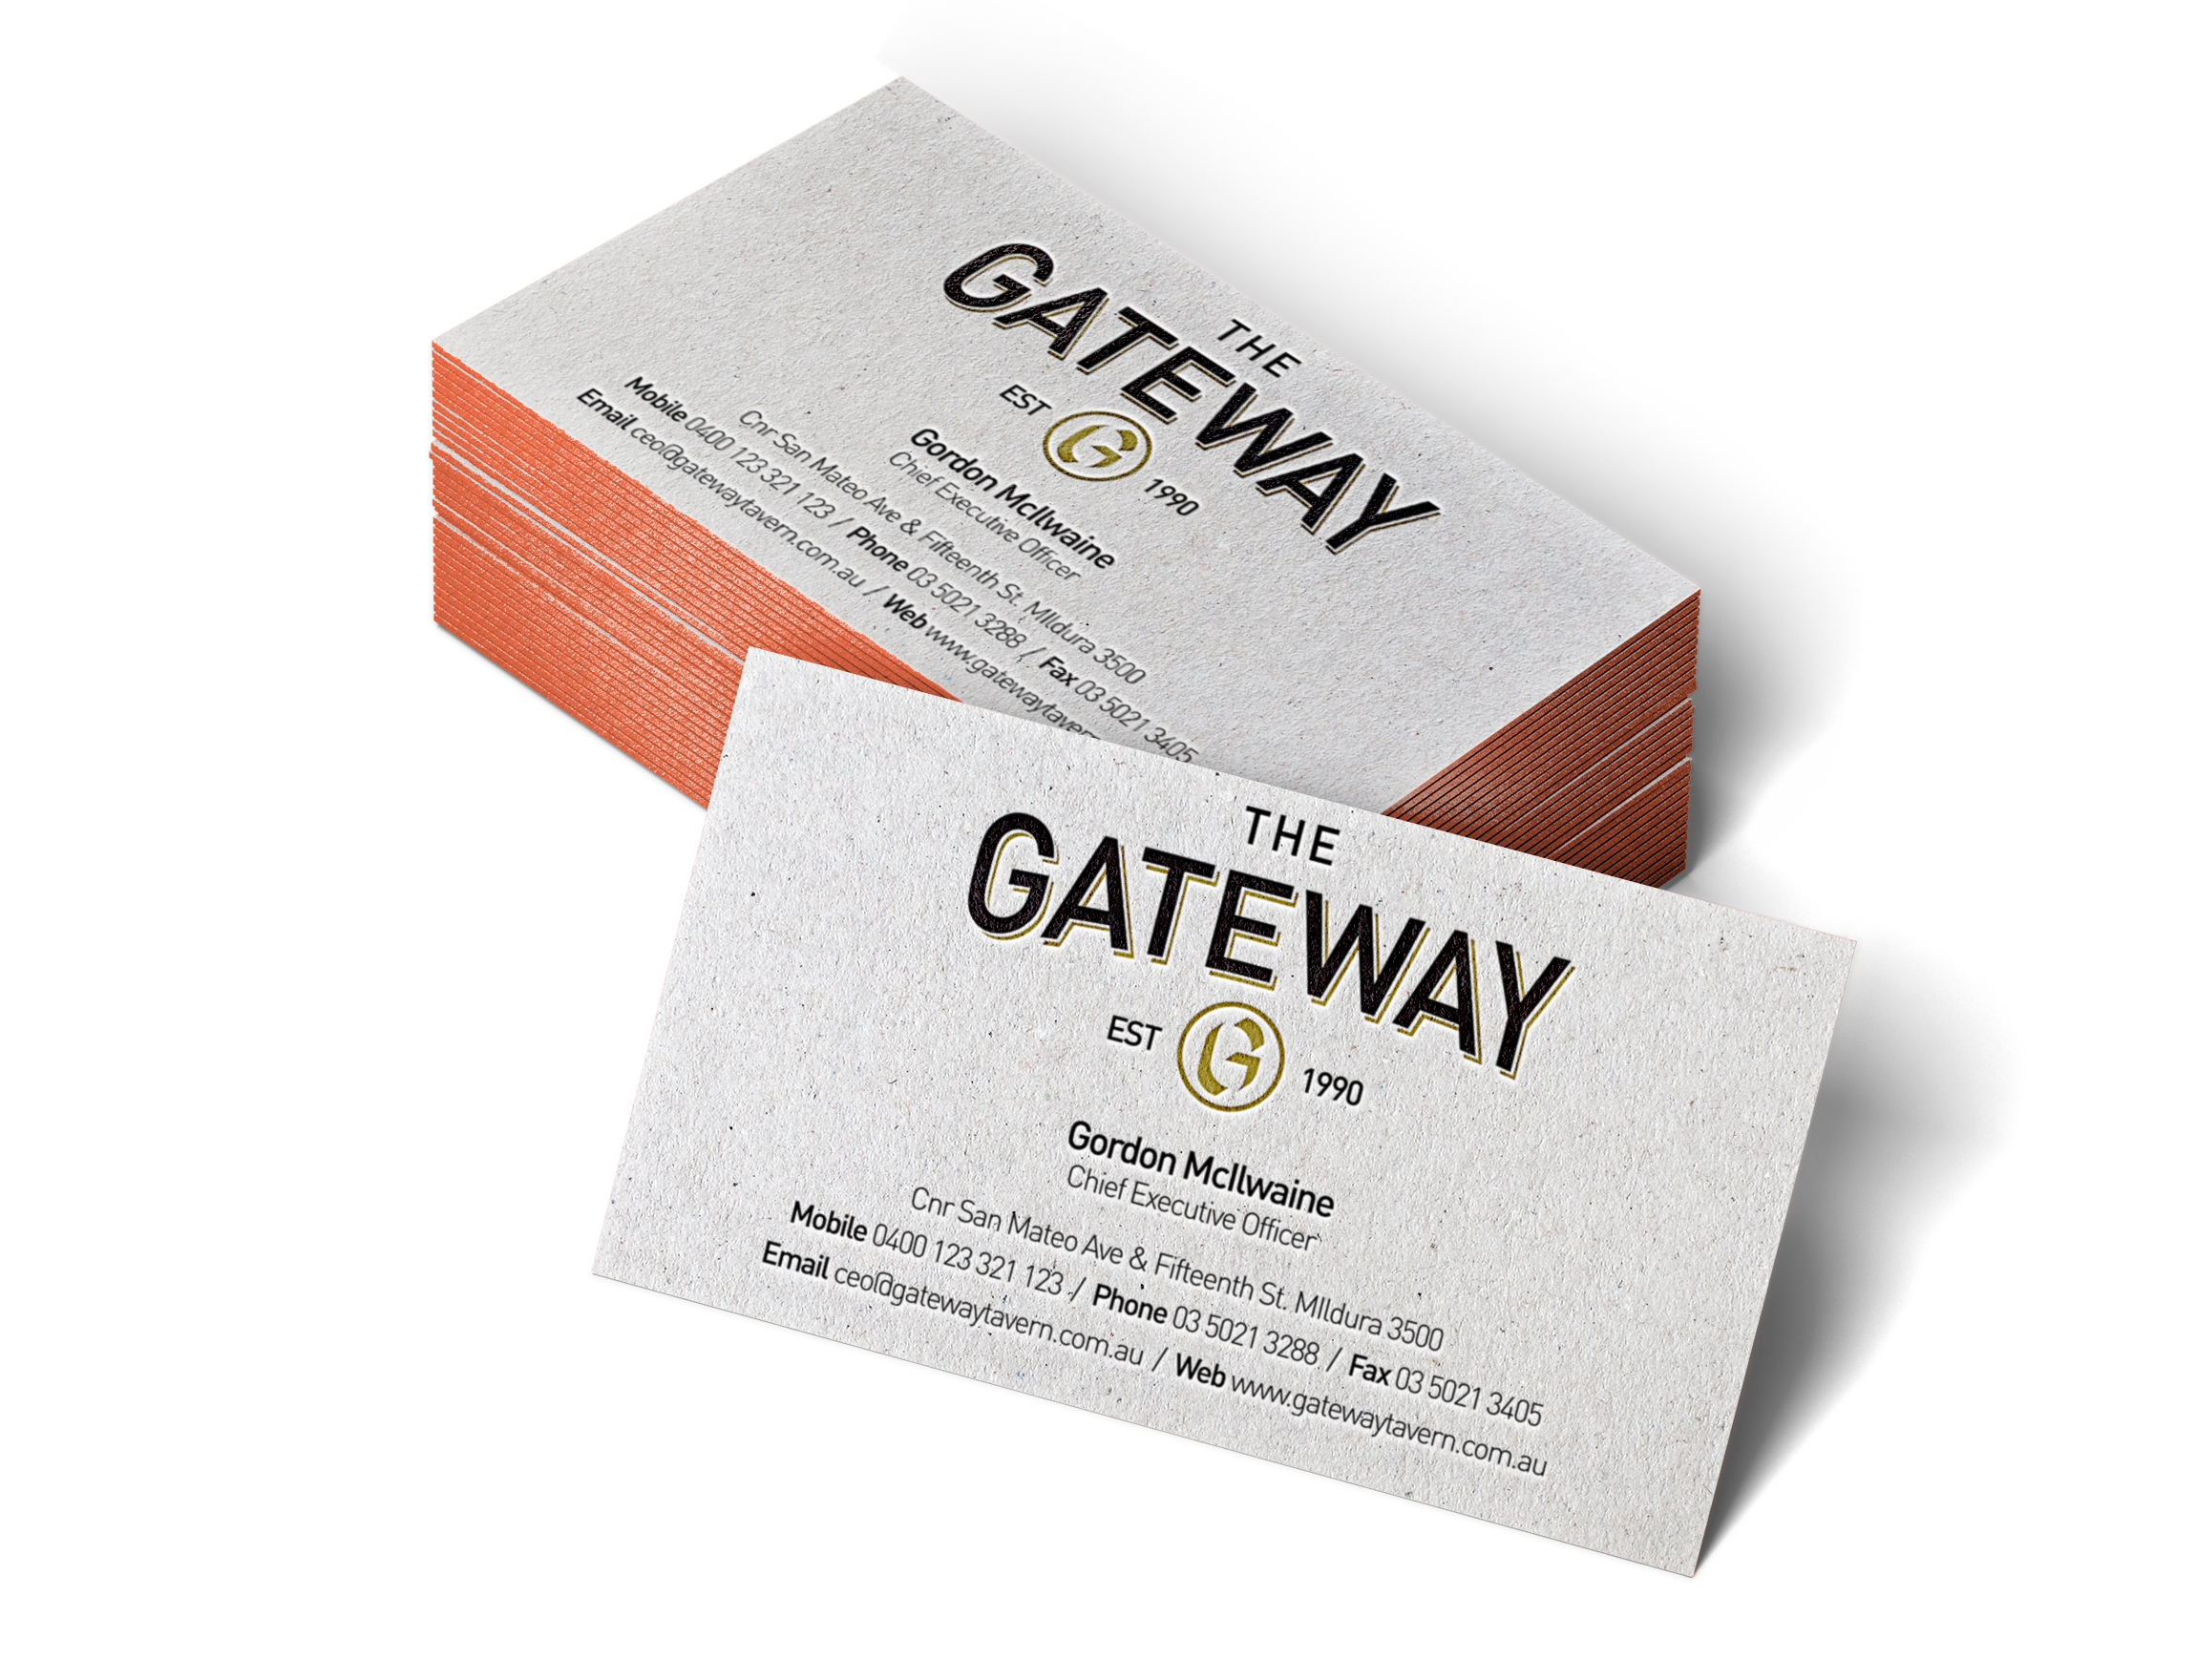 4 Letterpress Business Cards MockUp.jpg